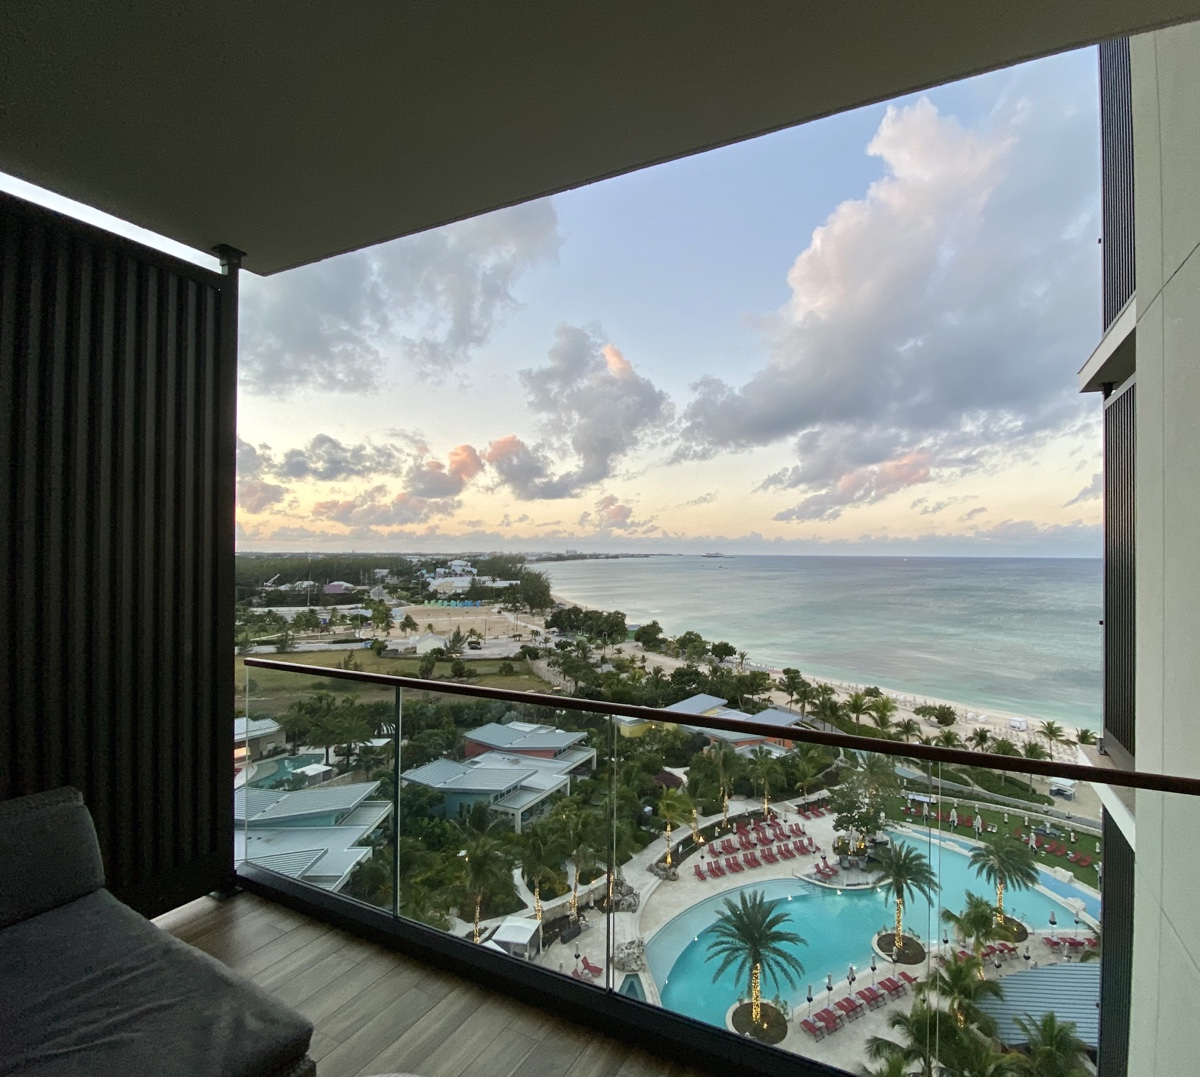 Kimpton Seafire IHG Grand Cayman King Ocean View Balcony and View